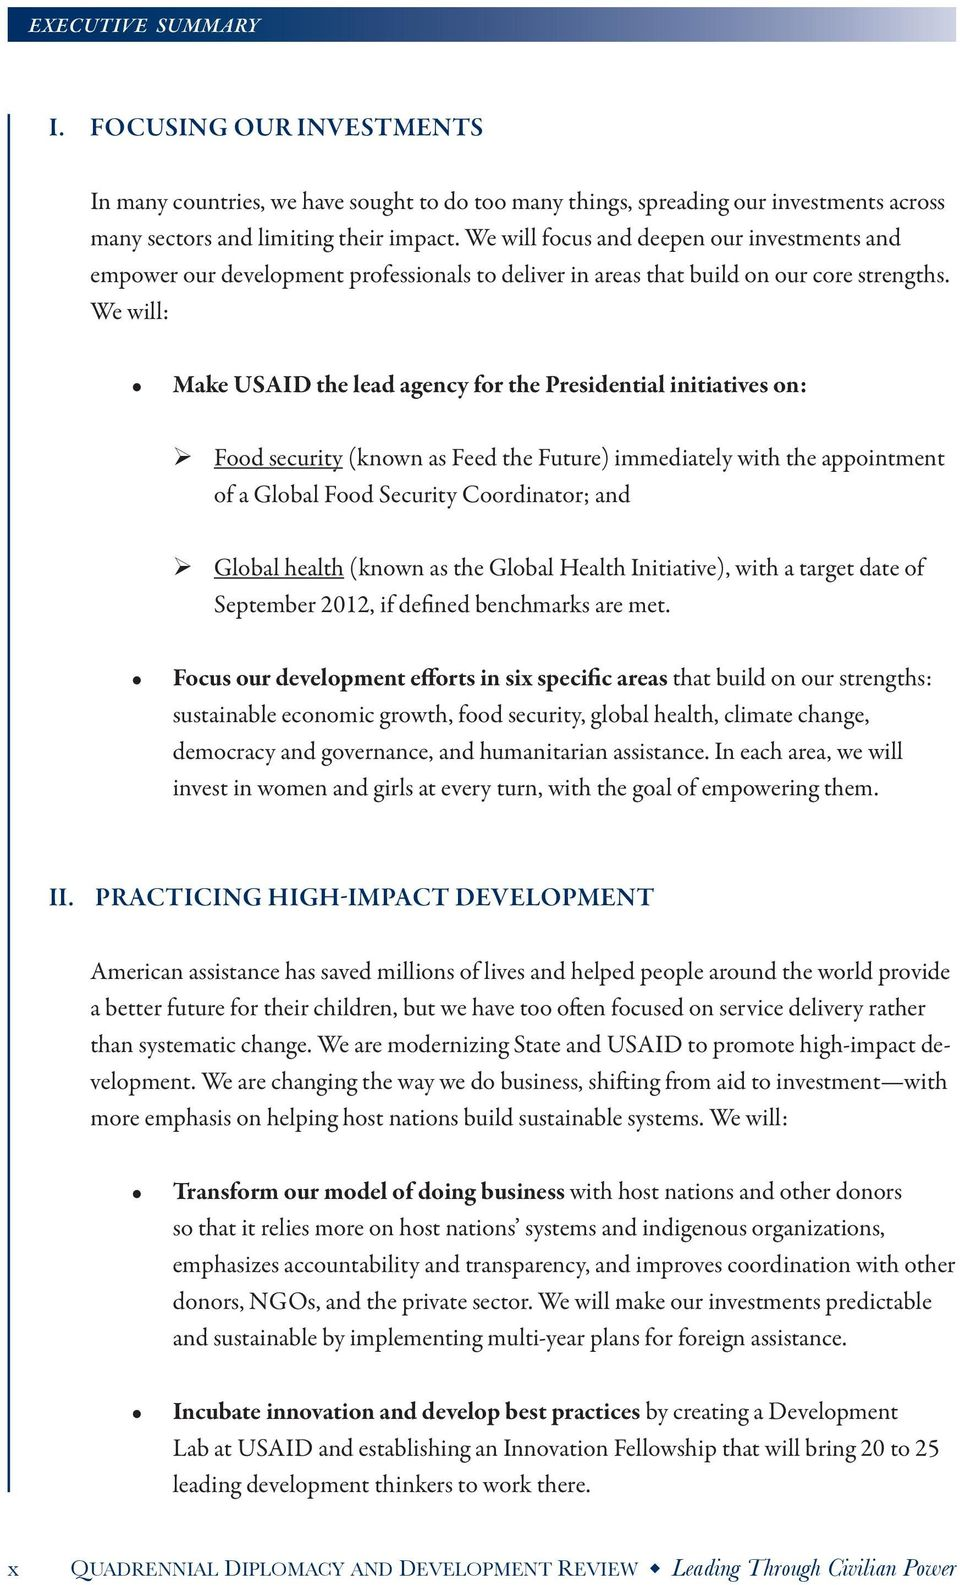 We will: Make USAID the lead agency for the Presidential initiatives on: Food security (known as Feed the Future) immediately with the appointment of a Global Food Security Coordinator; and Global